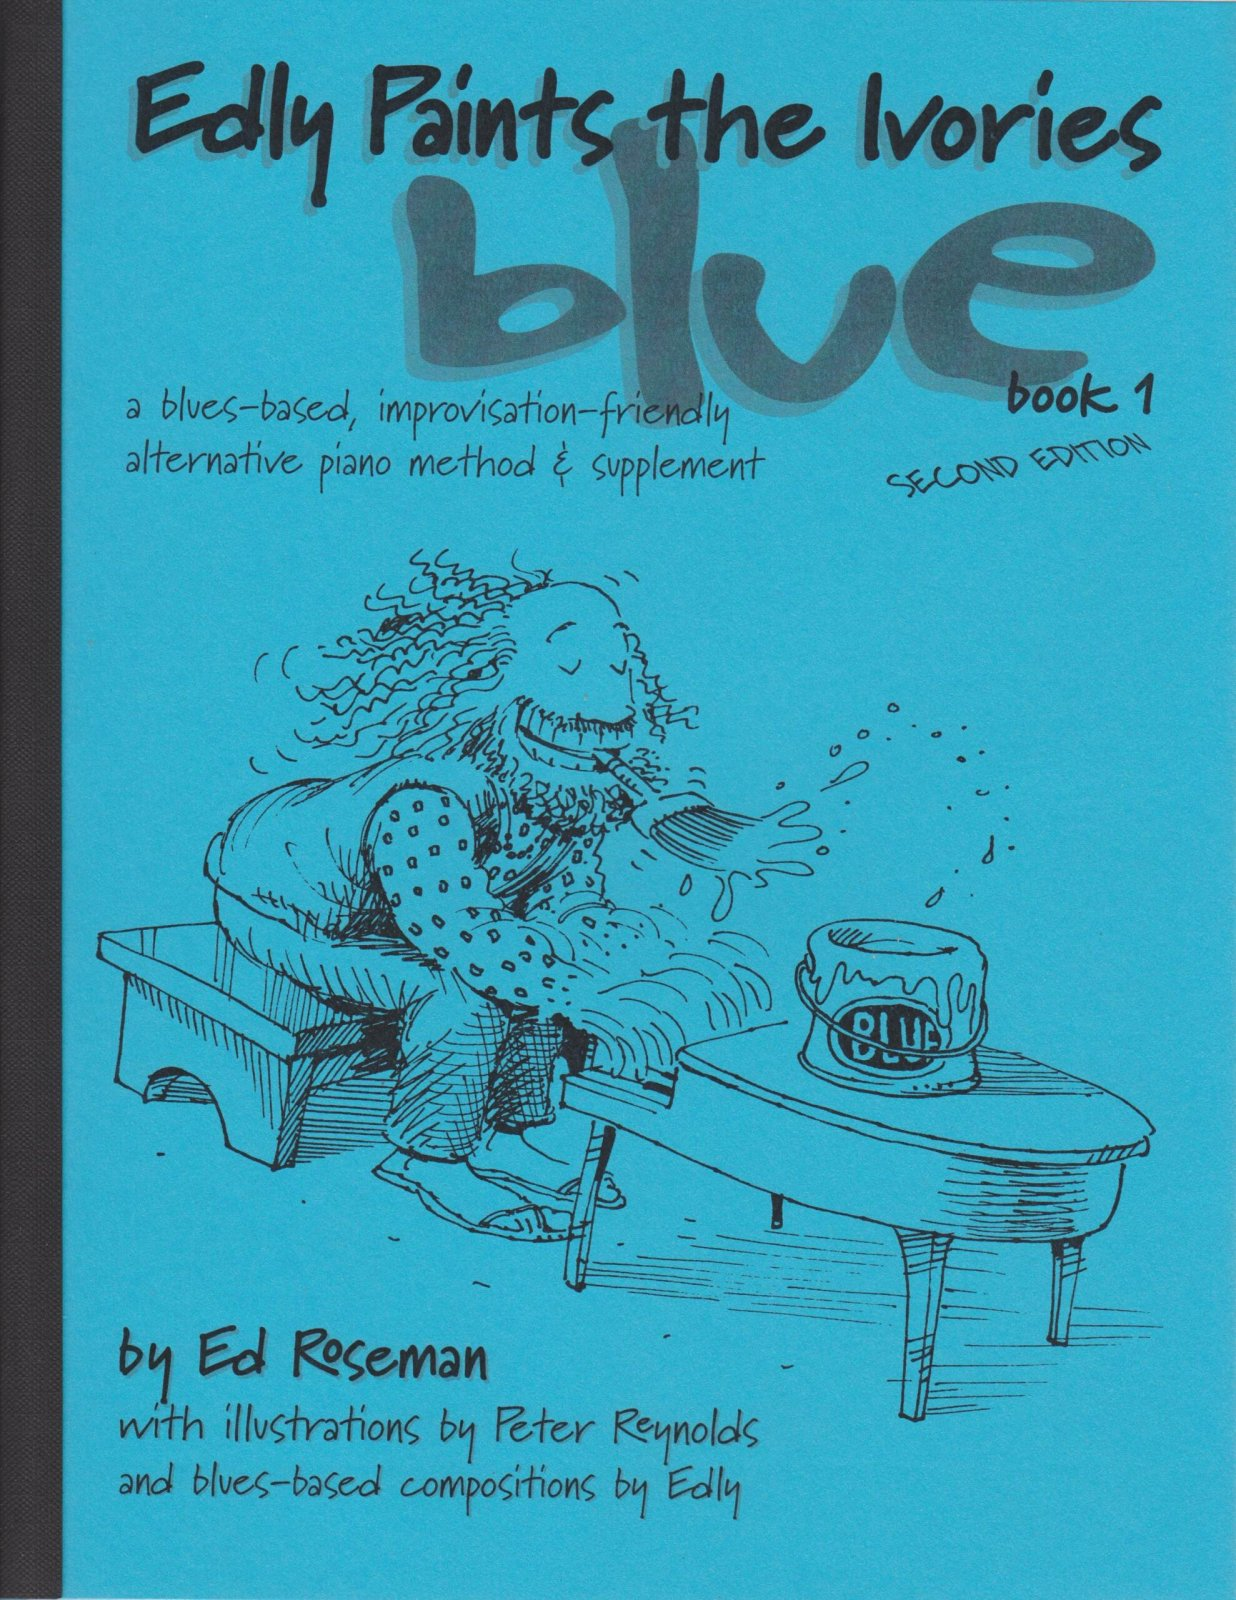 Edly Paints the Ivories Blue: Book 1